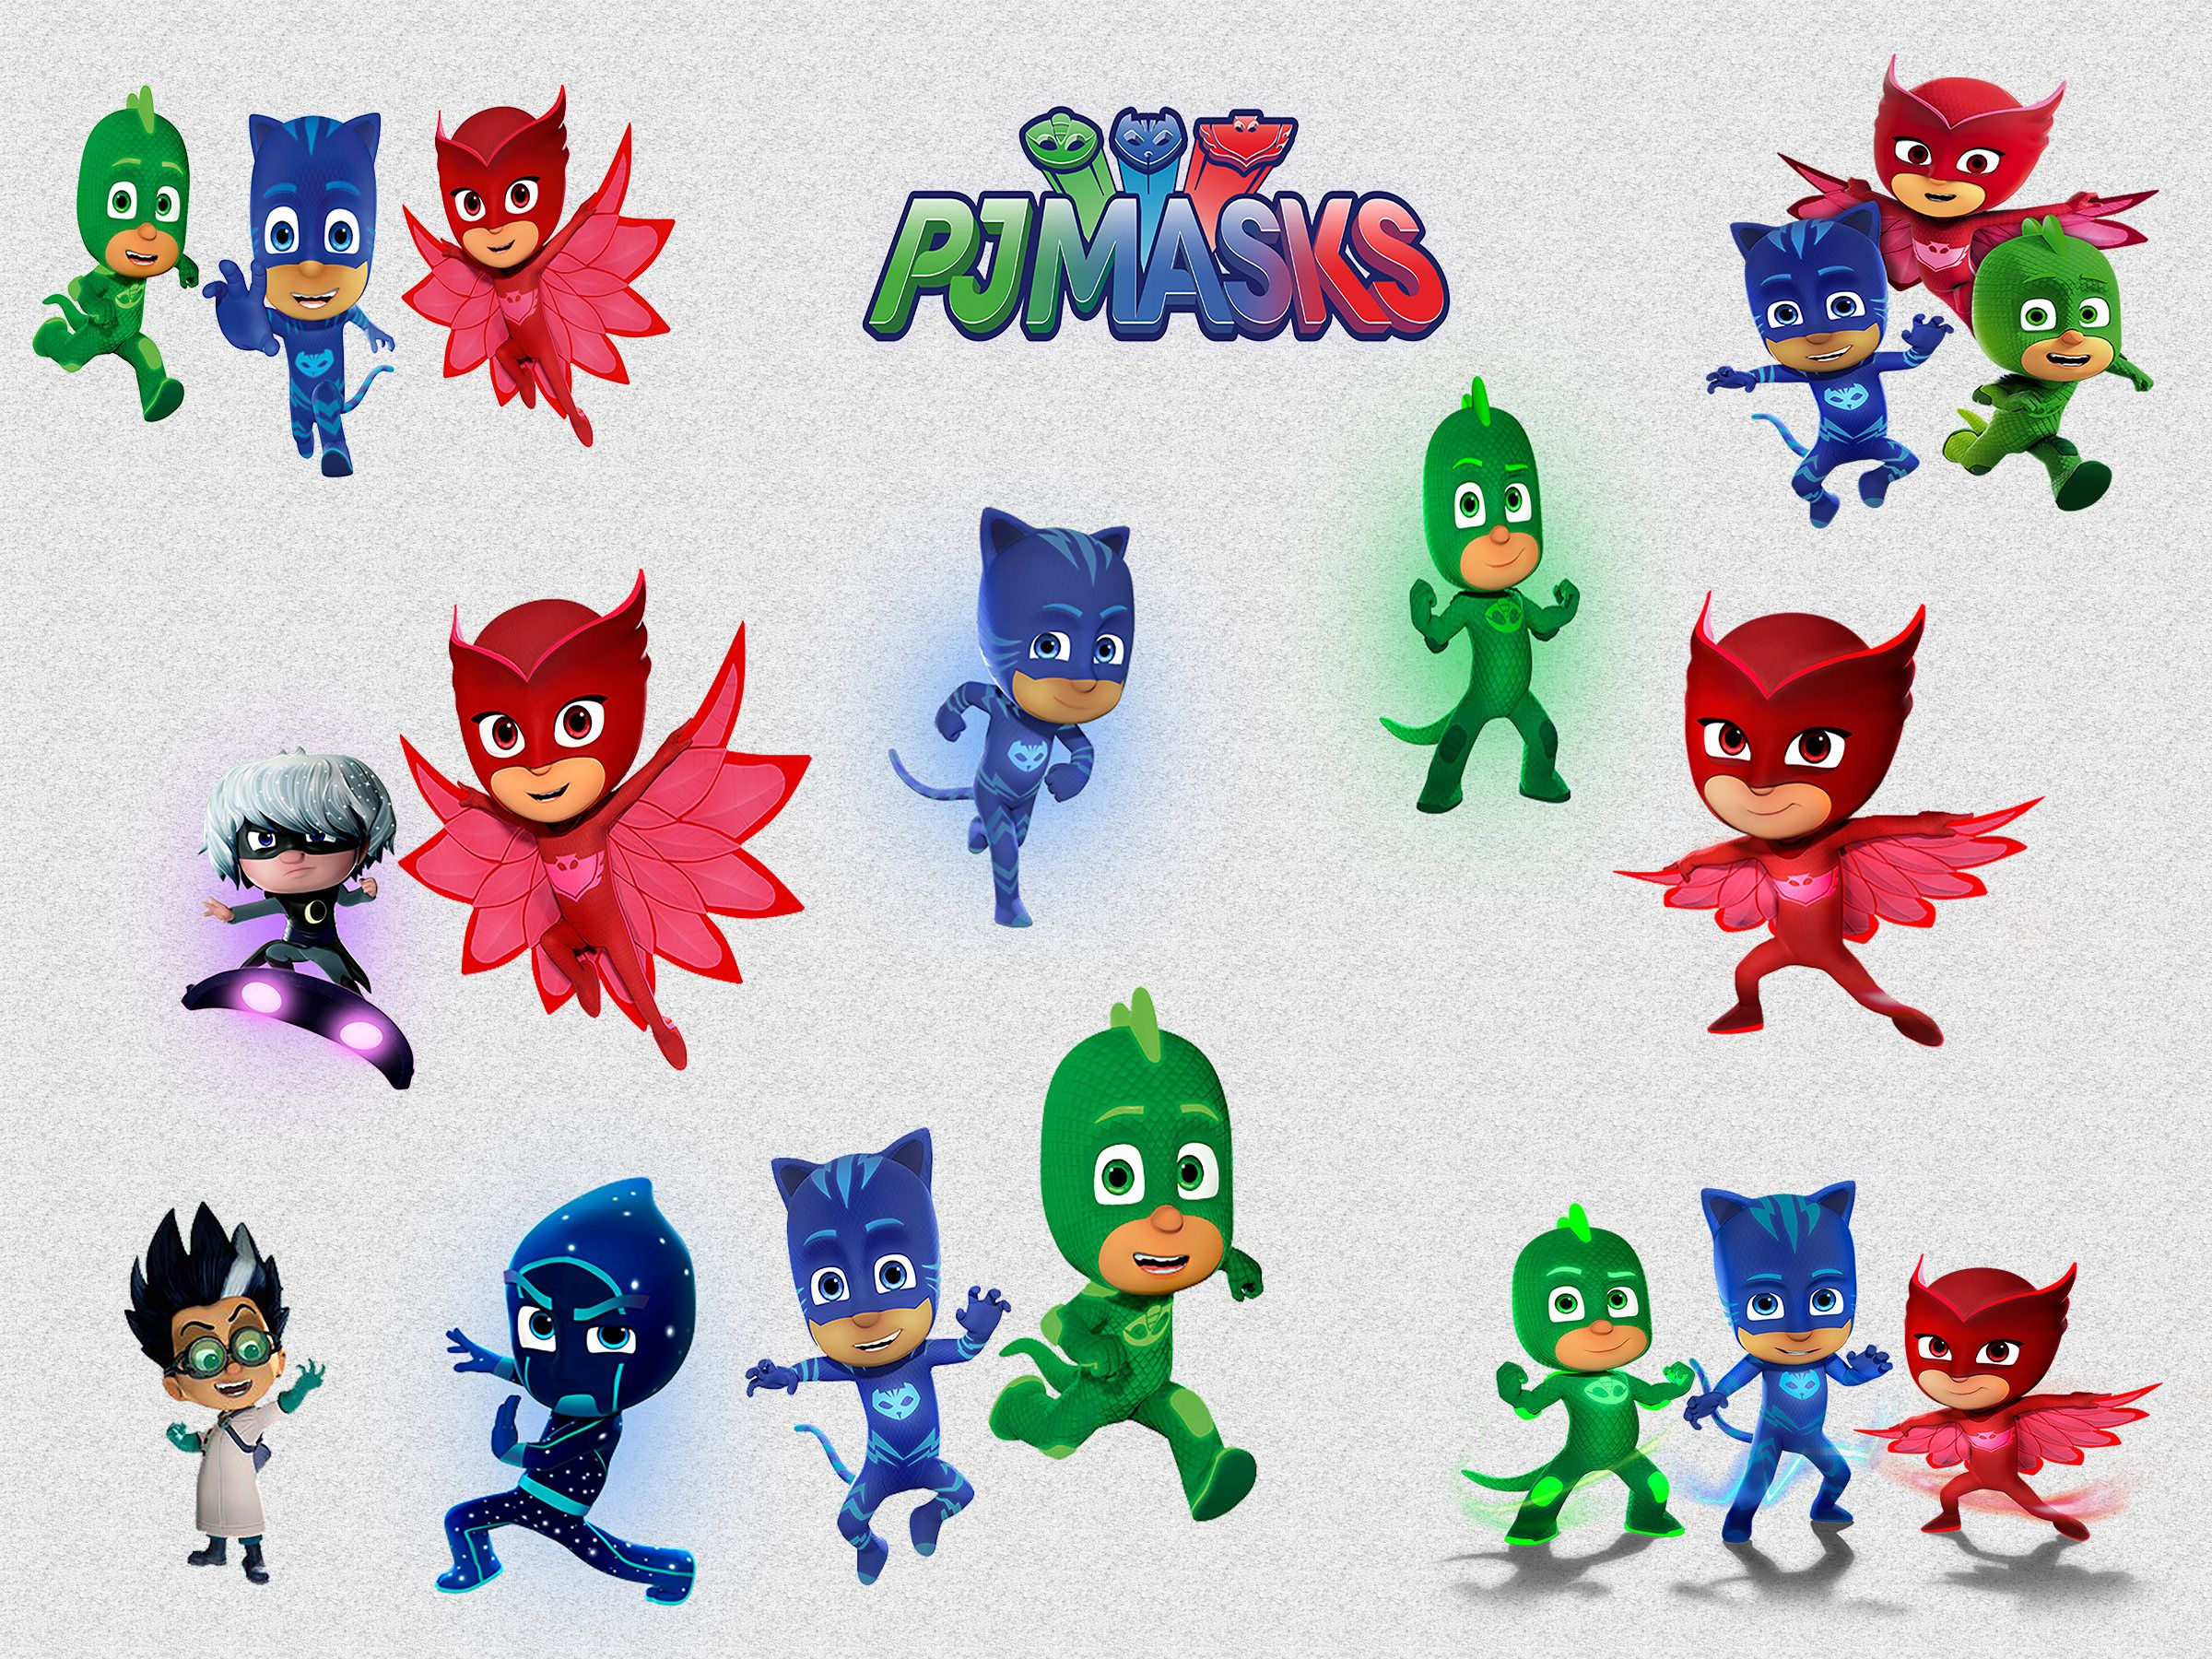 High Quality PJ MASKS CLIPART, 18 High Quality Png Images With Transparent Backgrounds,  300 Dpi Http